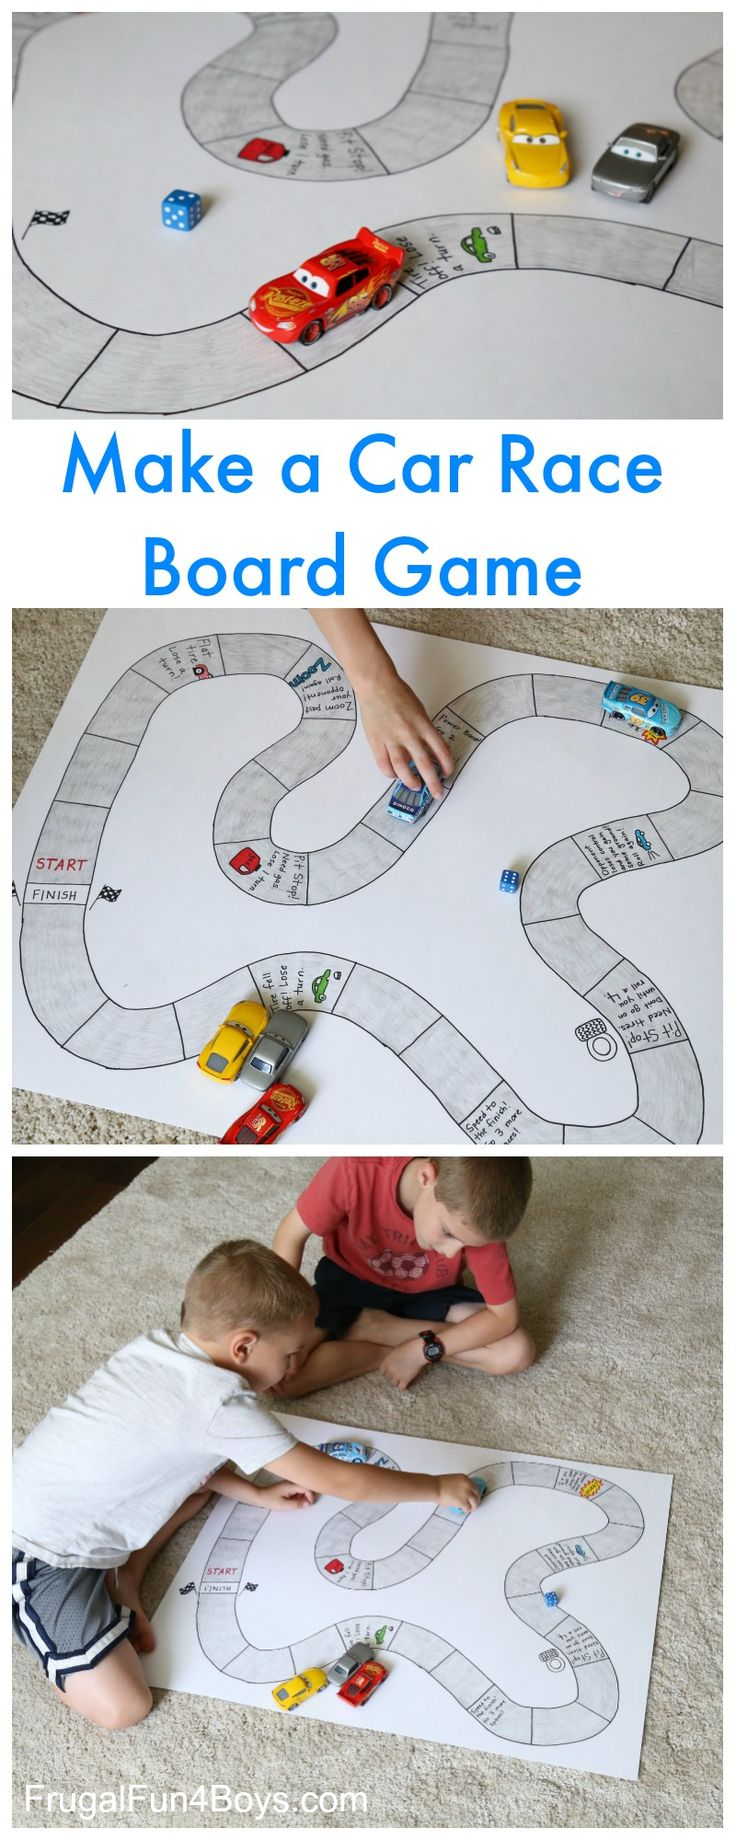 Race track printable board games - Make Your Own Car Race Board Game